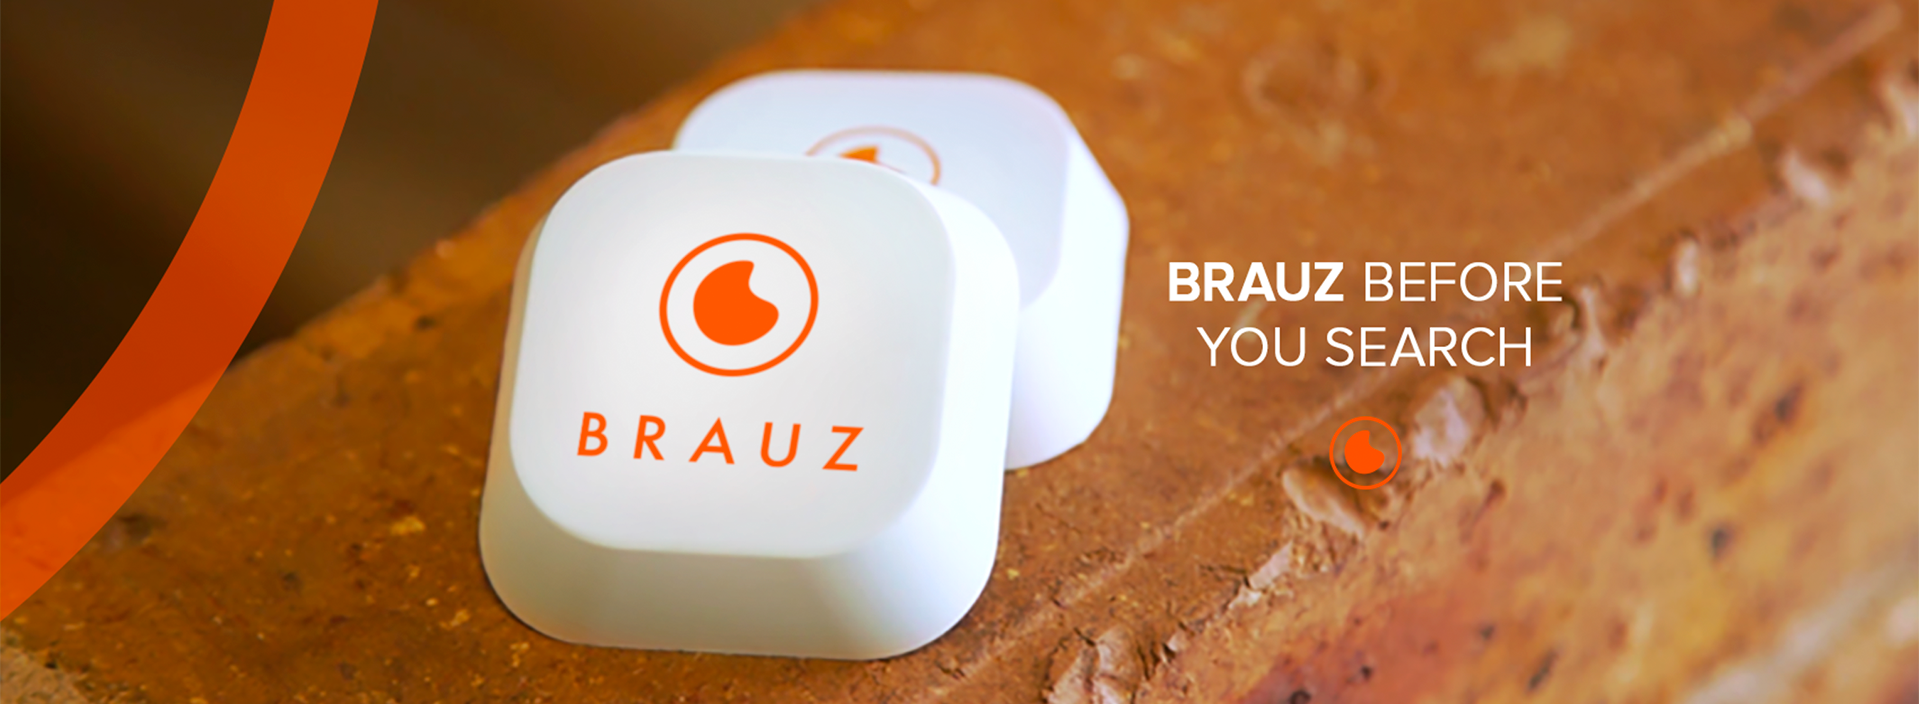 Brauz Before You Search